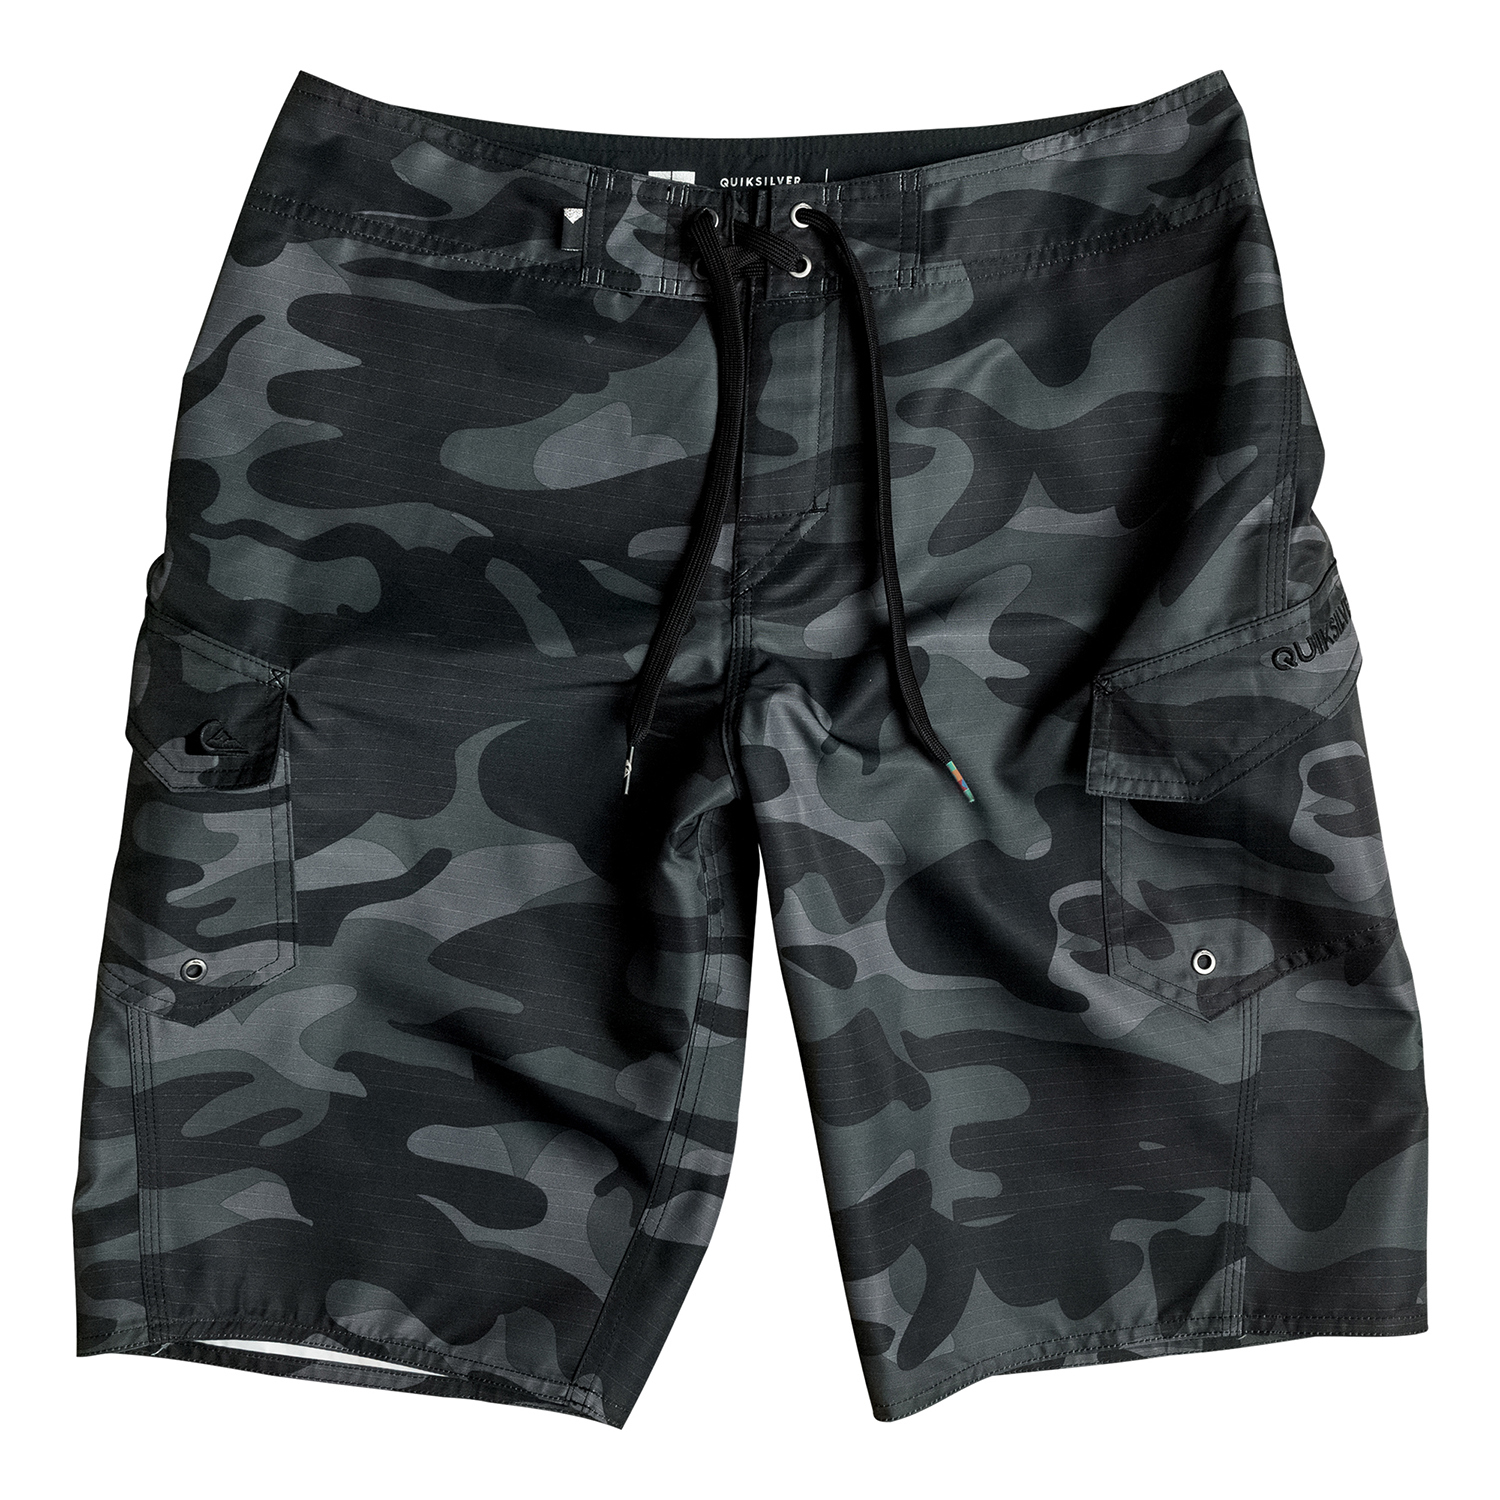 6390841057 QUIKSILVER Men's Manic Camo Board Shorts | West Marine